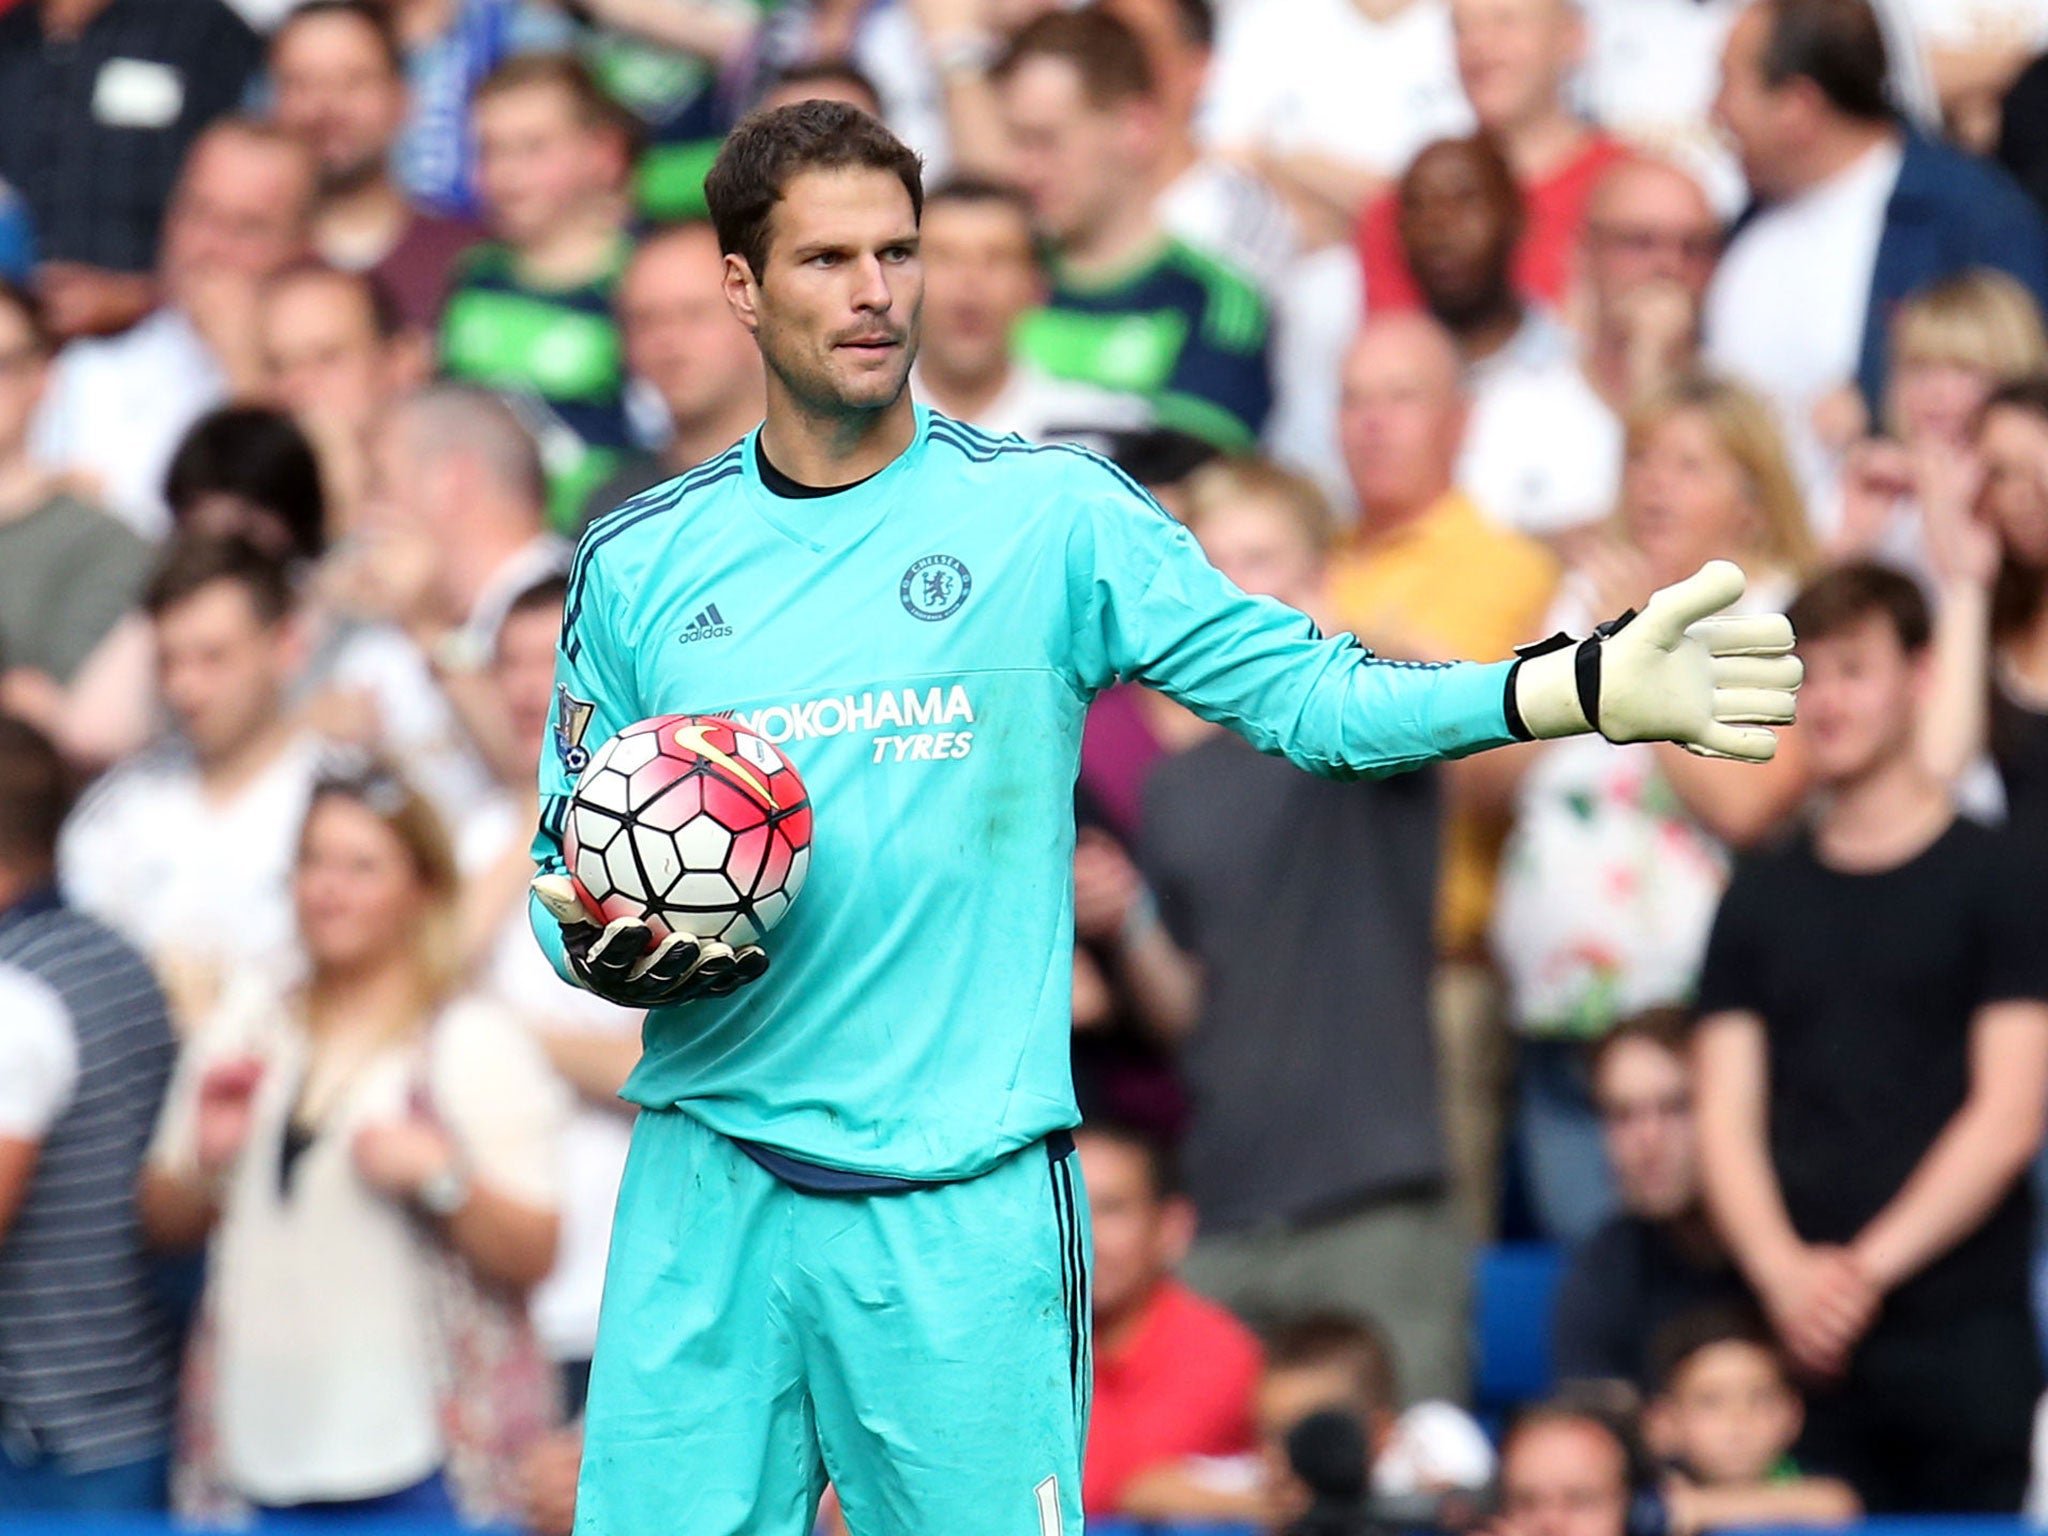 Chelsea 2 Swansea 2 Jose Mourinho backs Asmir Begovic with